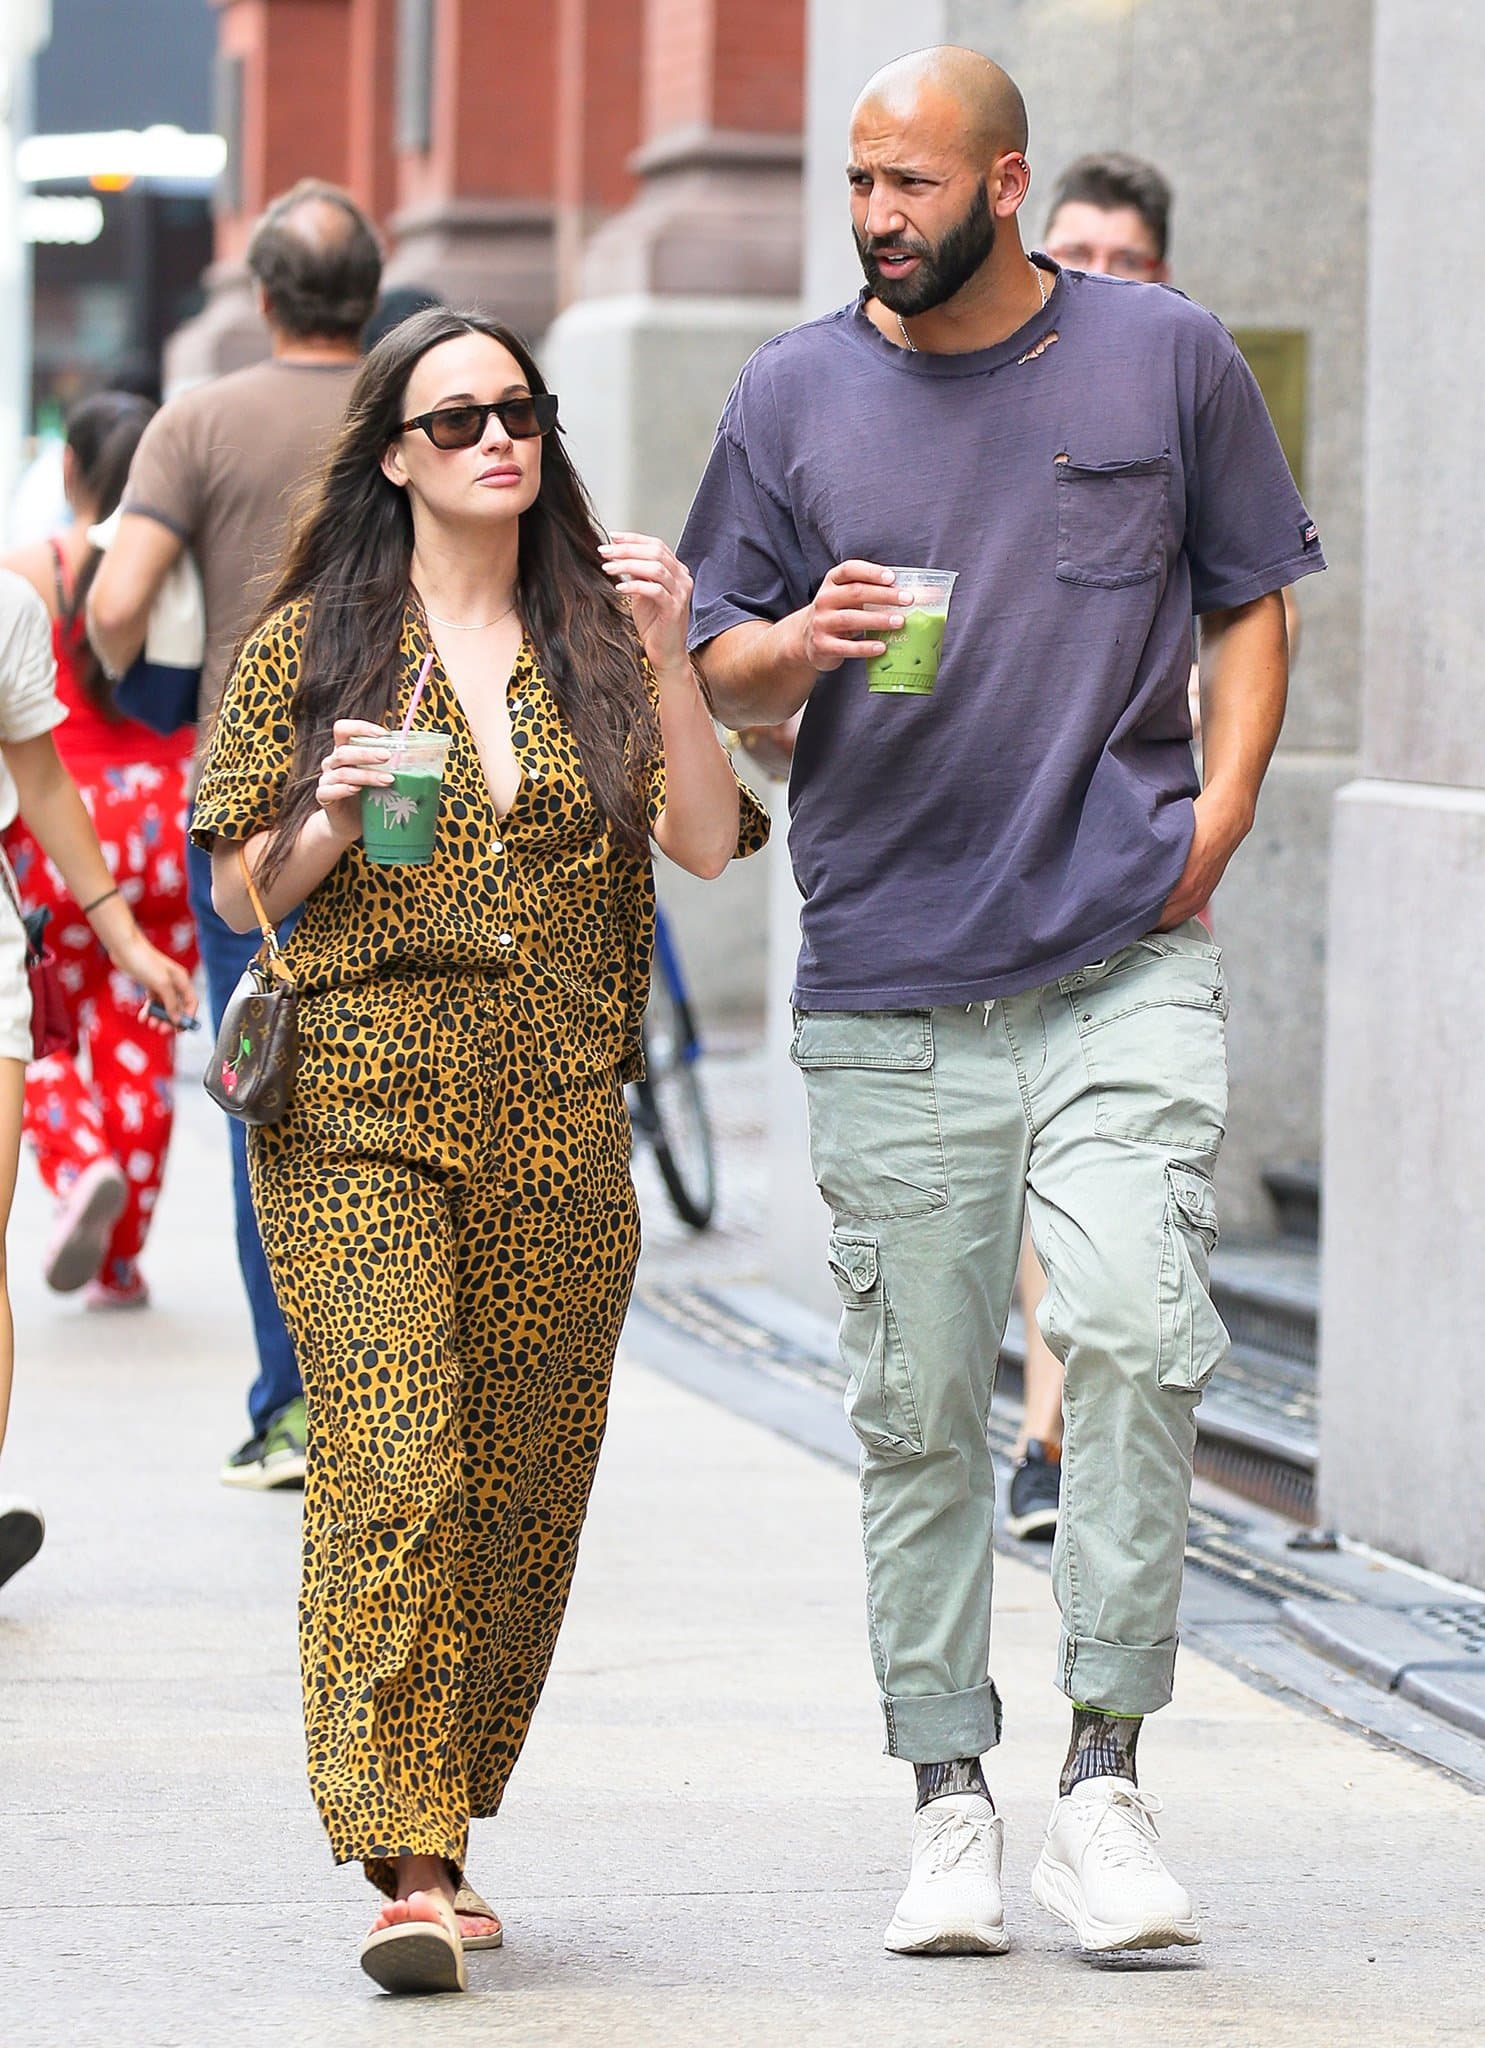 Kacey Musgraves and Cole Schafer grab a green juice while on a stroll in NYC on June 18, 2021